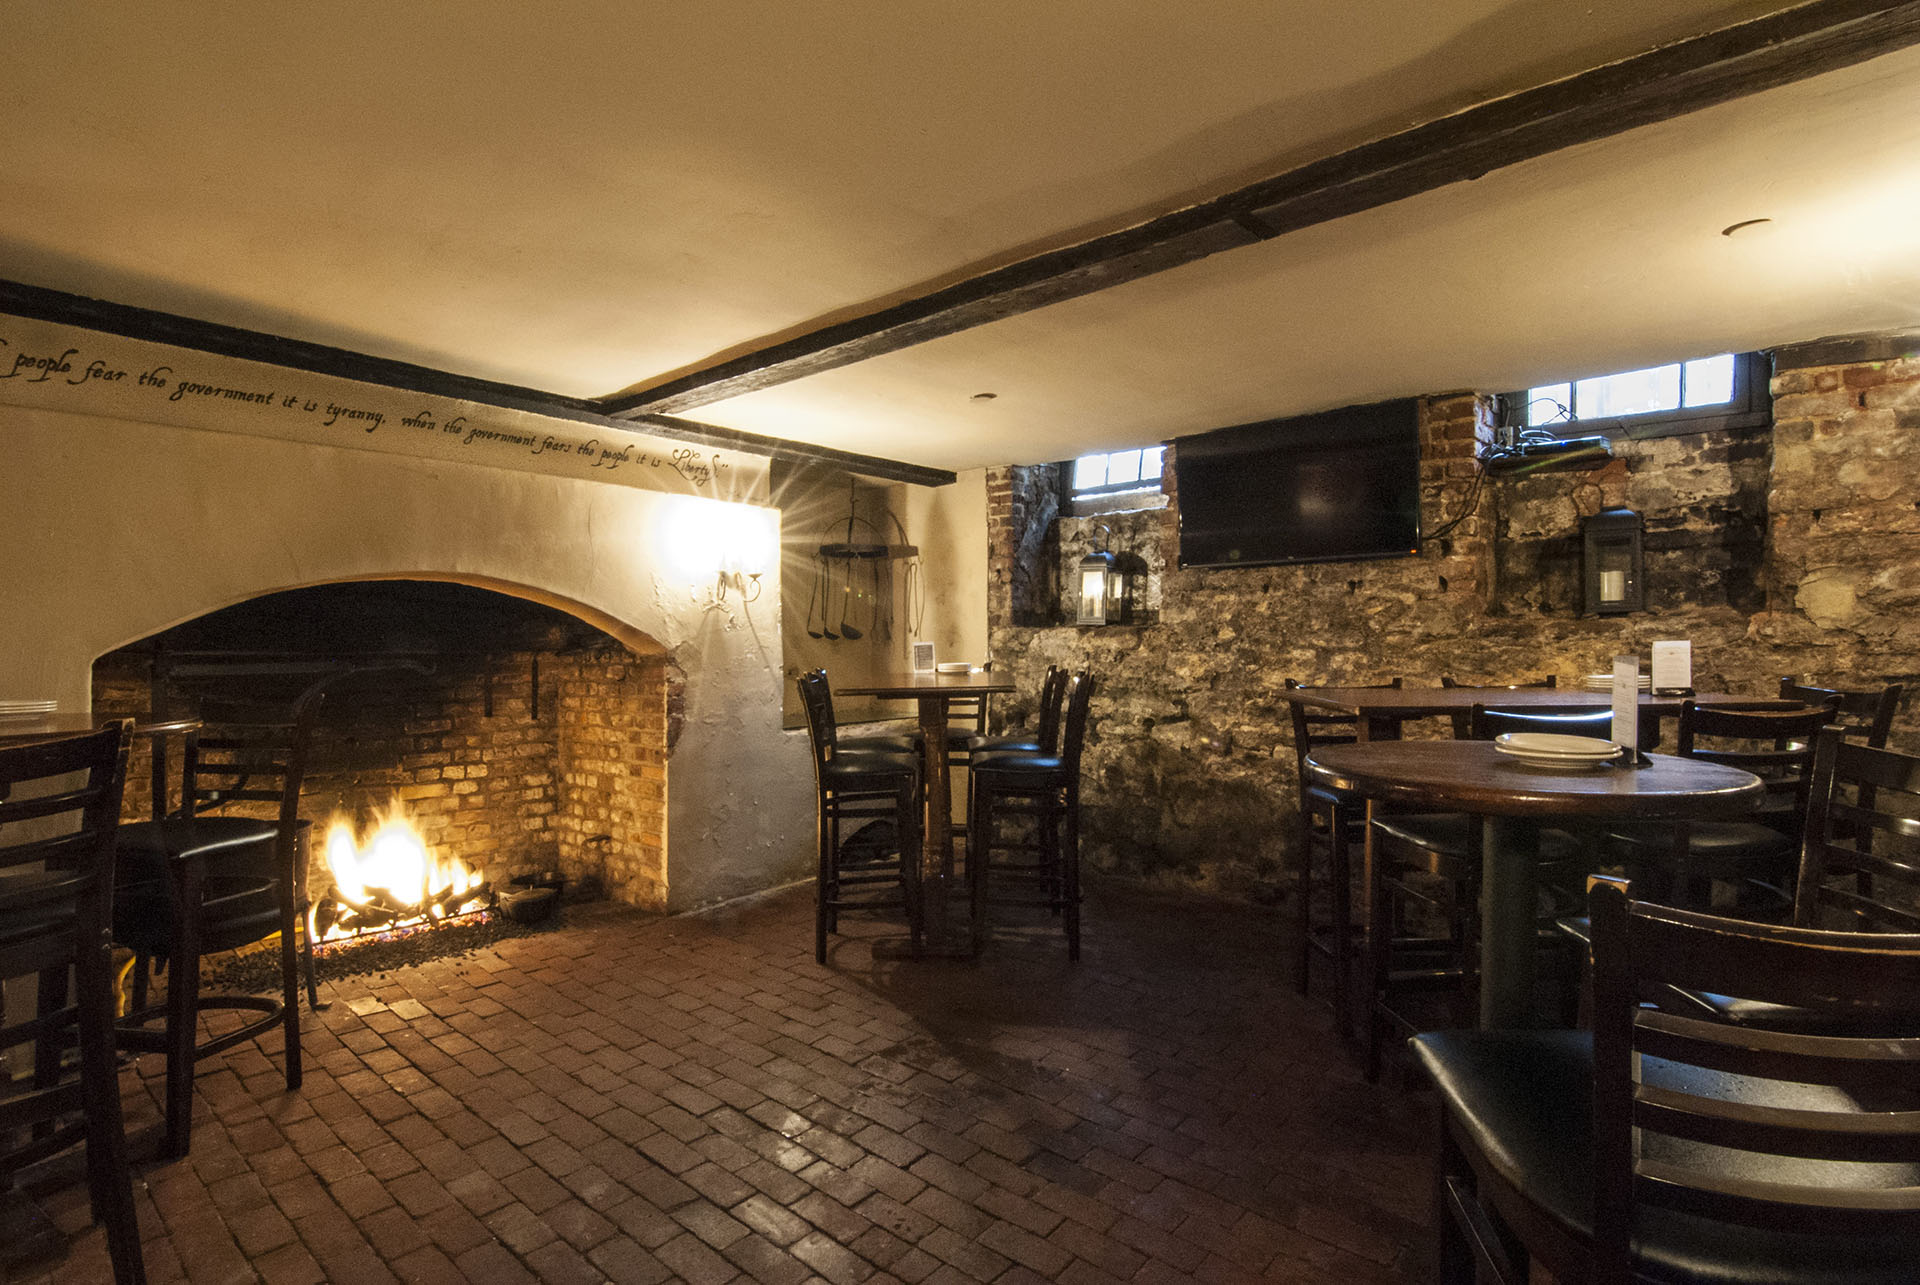 Reynold s tavern fireplace - 1747 Pub